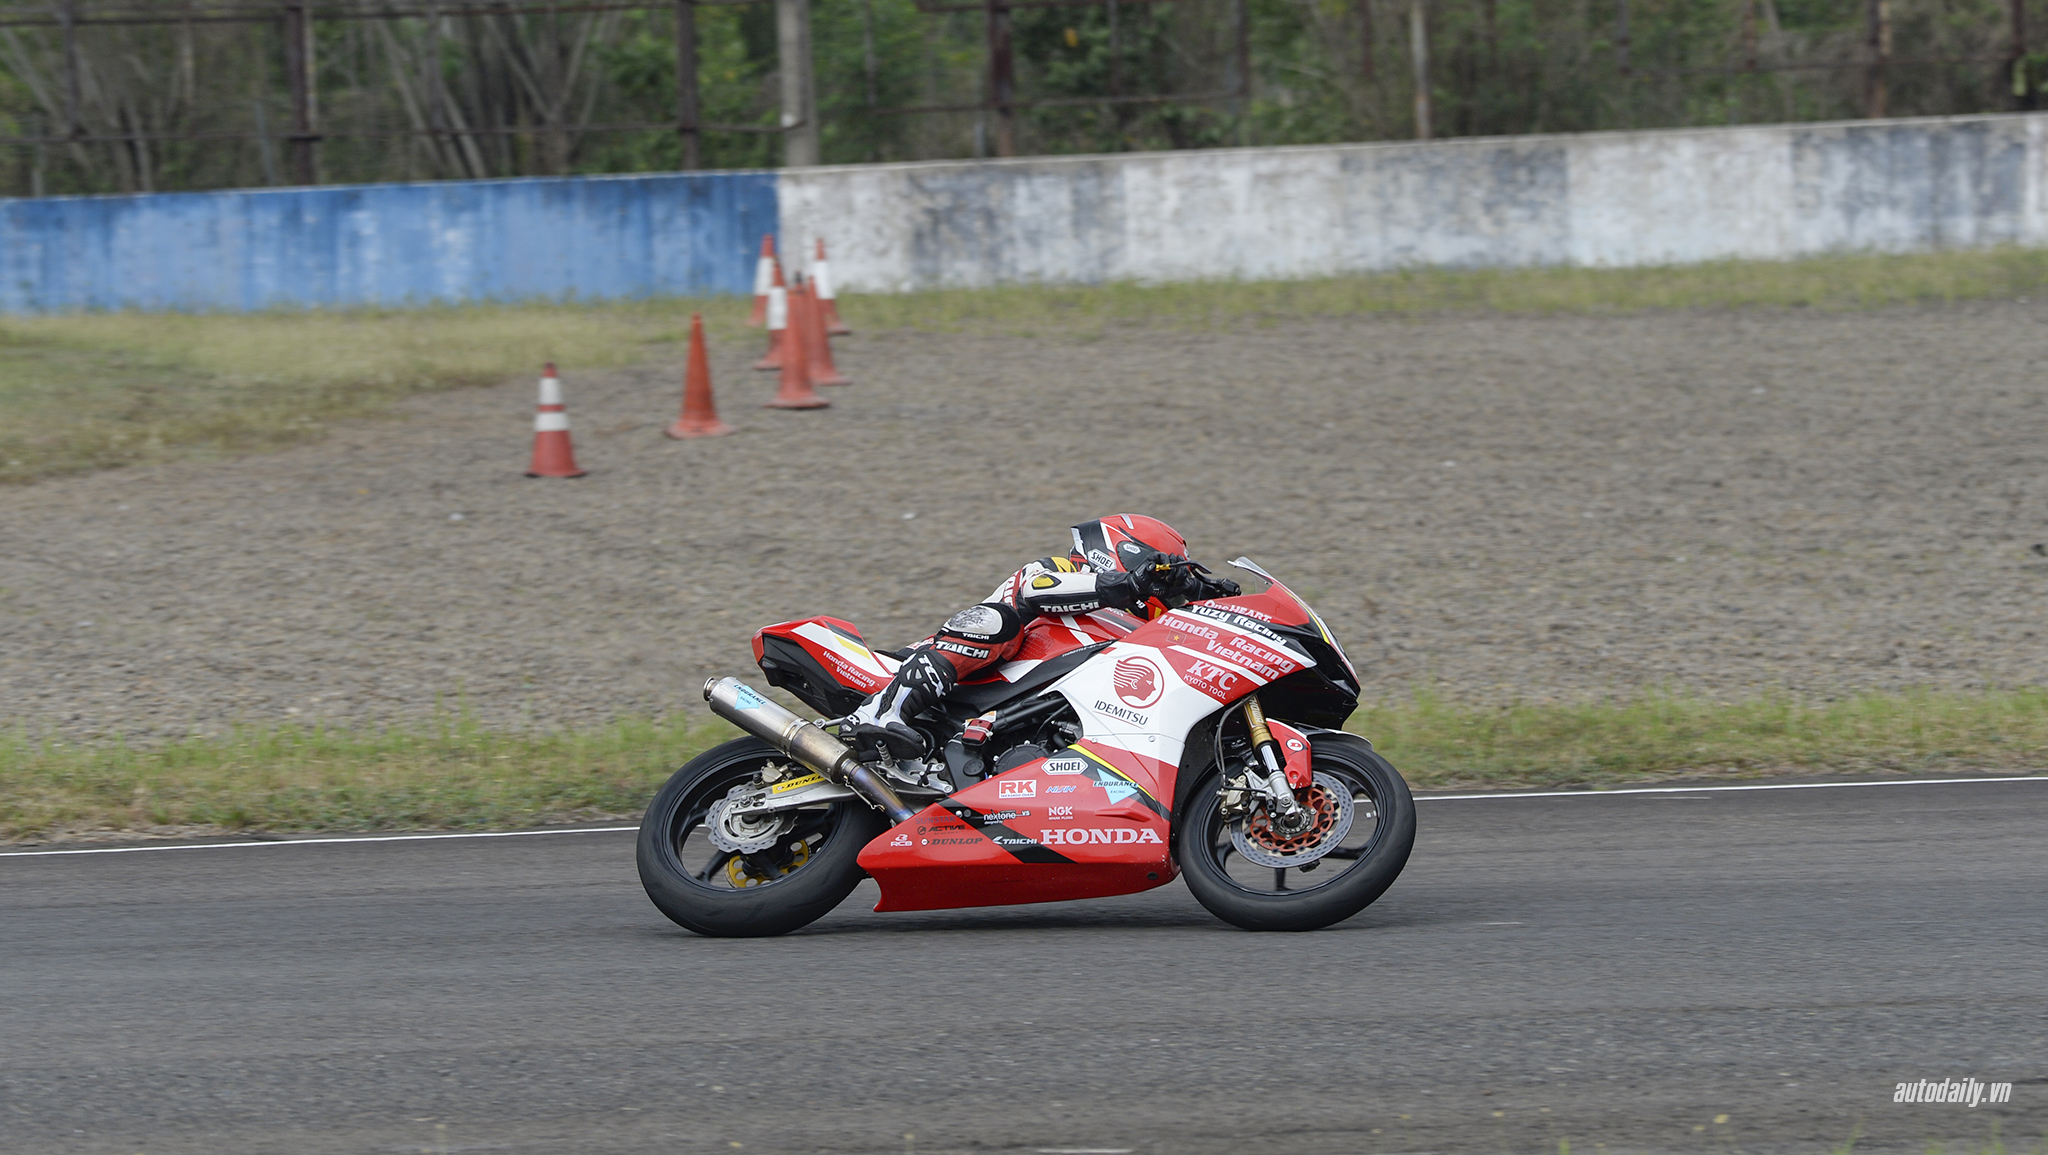 honda-racing-vn-dsc8531-copy.jpg